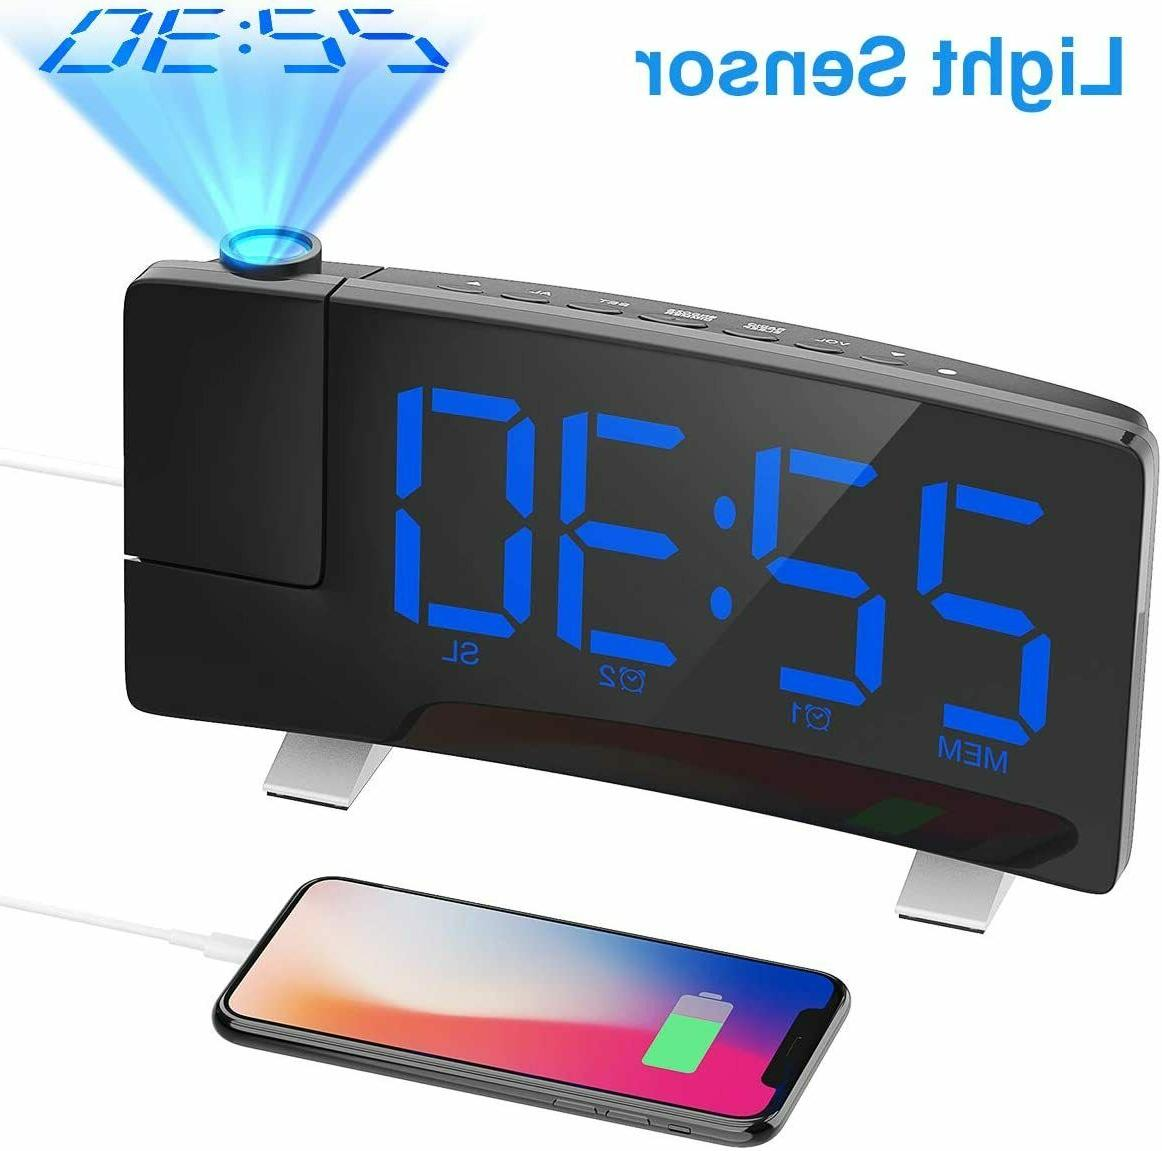 projection alarm clock 7 curved screen large